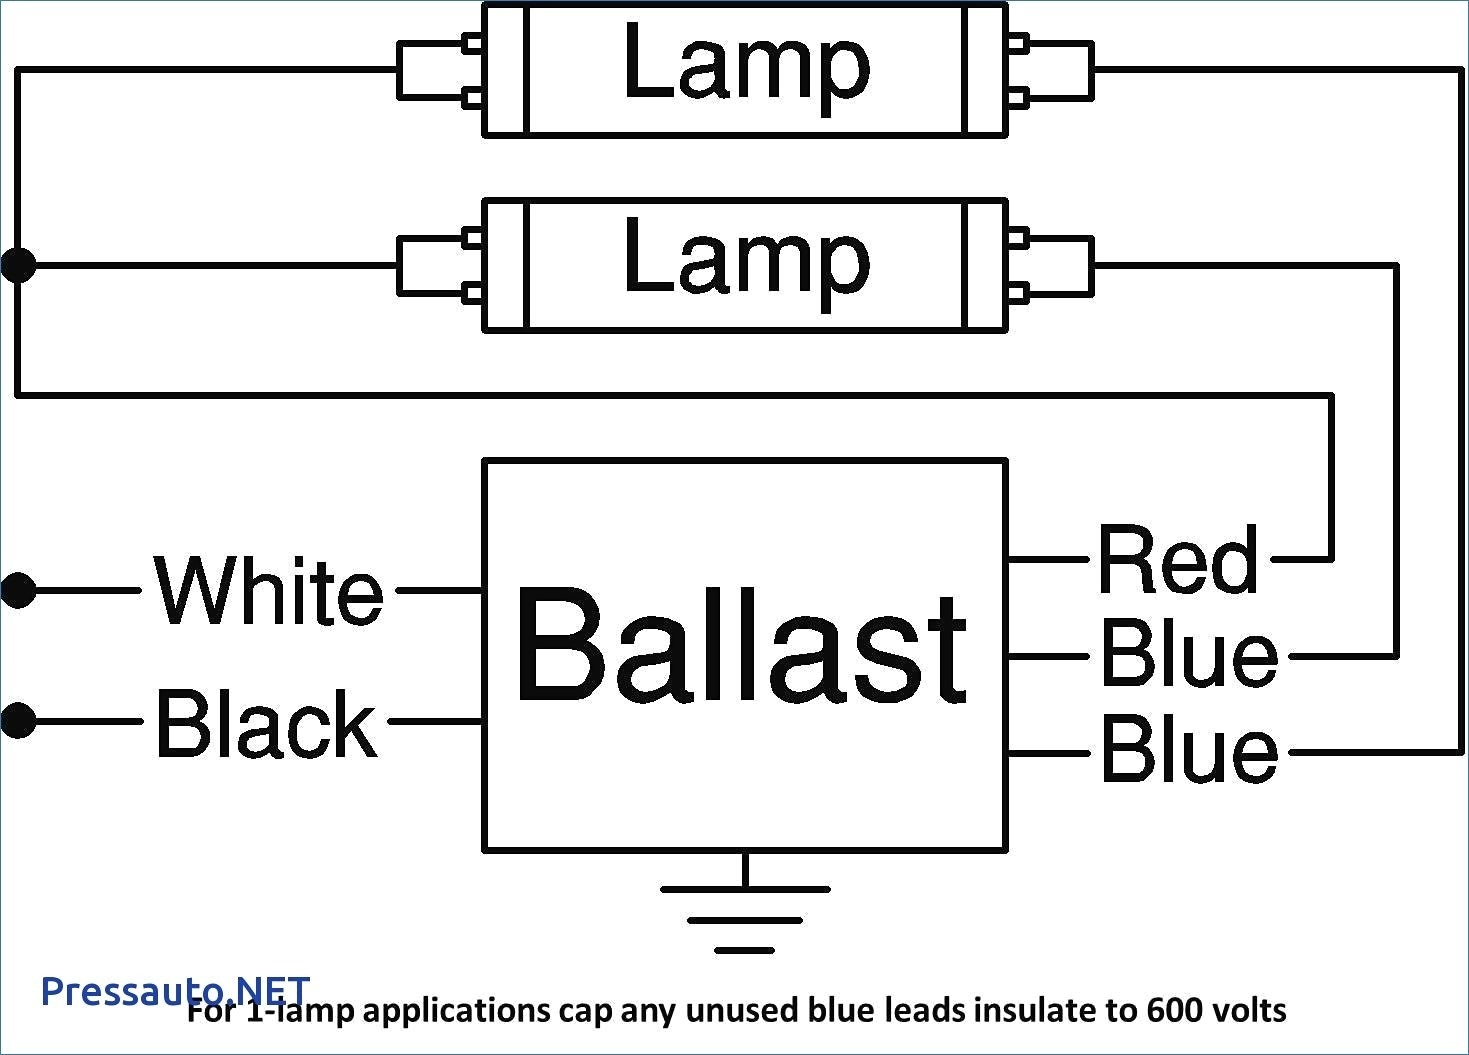 277 volt wiring diagram lamp 277 volt ballast wiring diagram | free wiring diagram